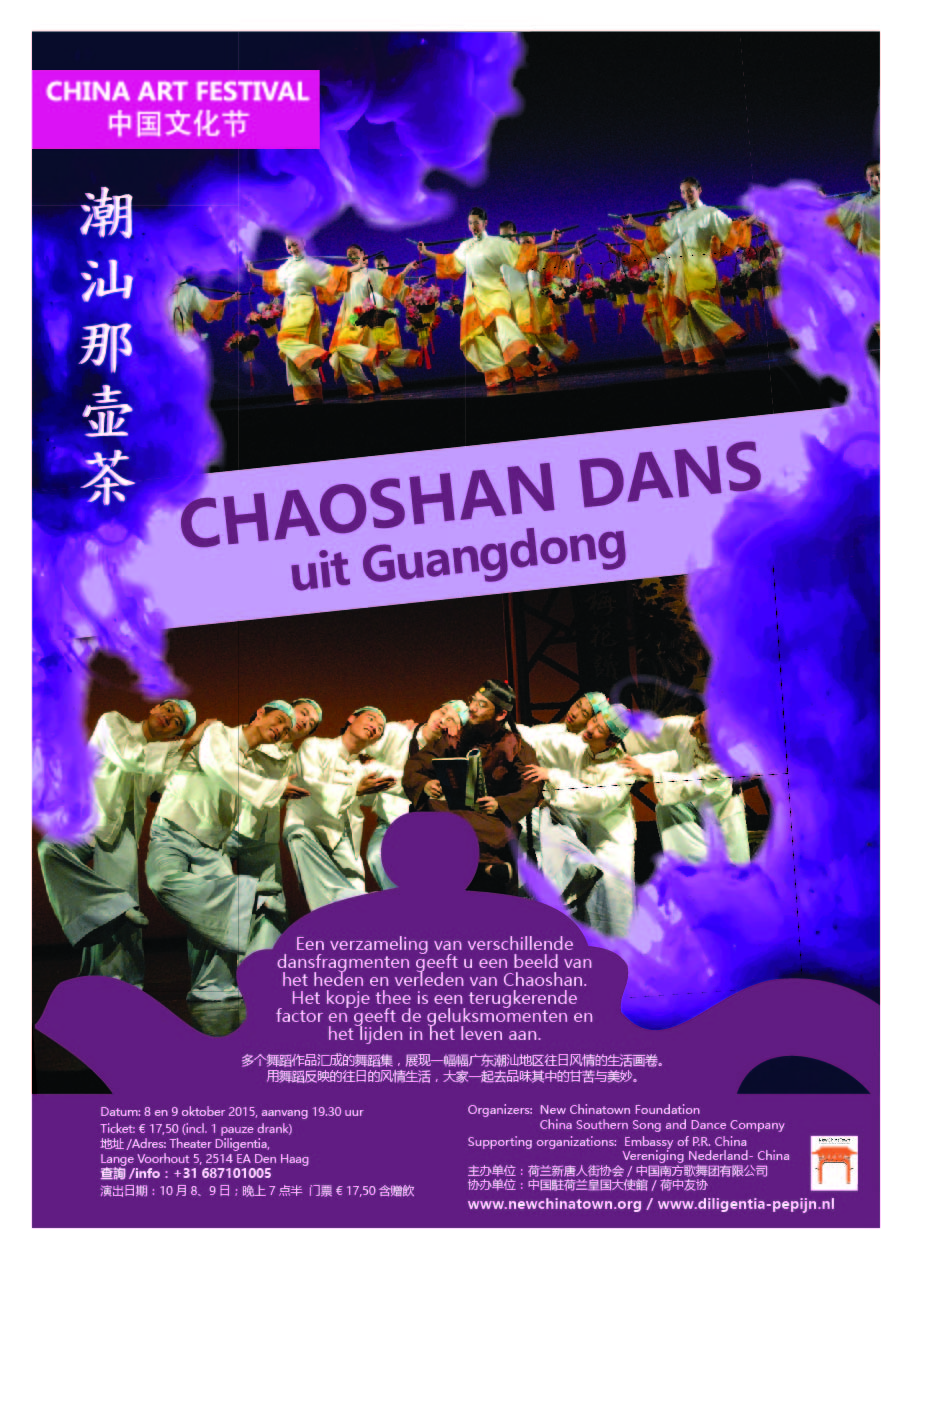 China Art Festival: Chaoshan Dans uit Guangdong